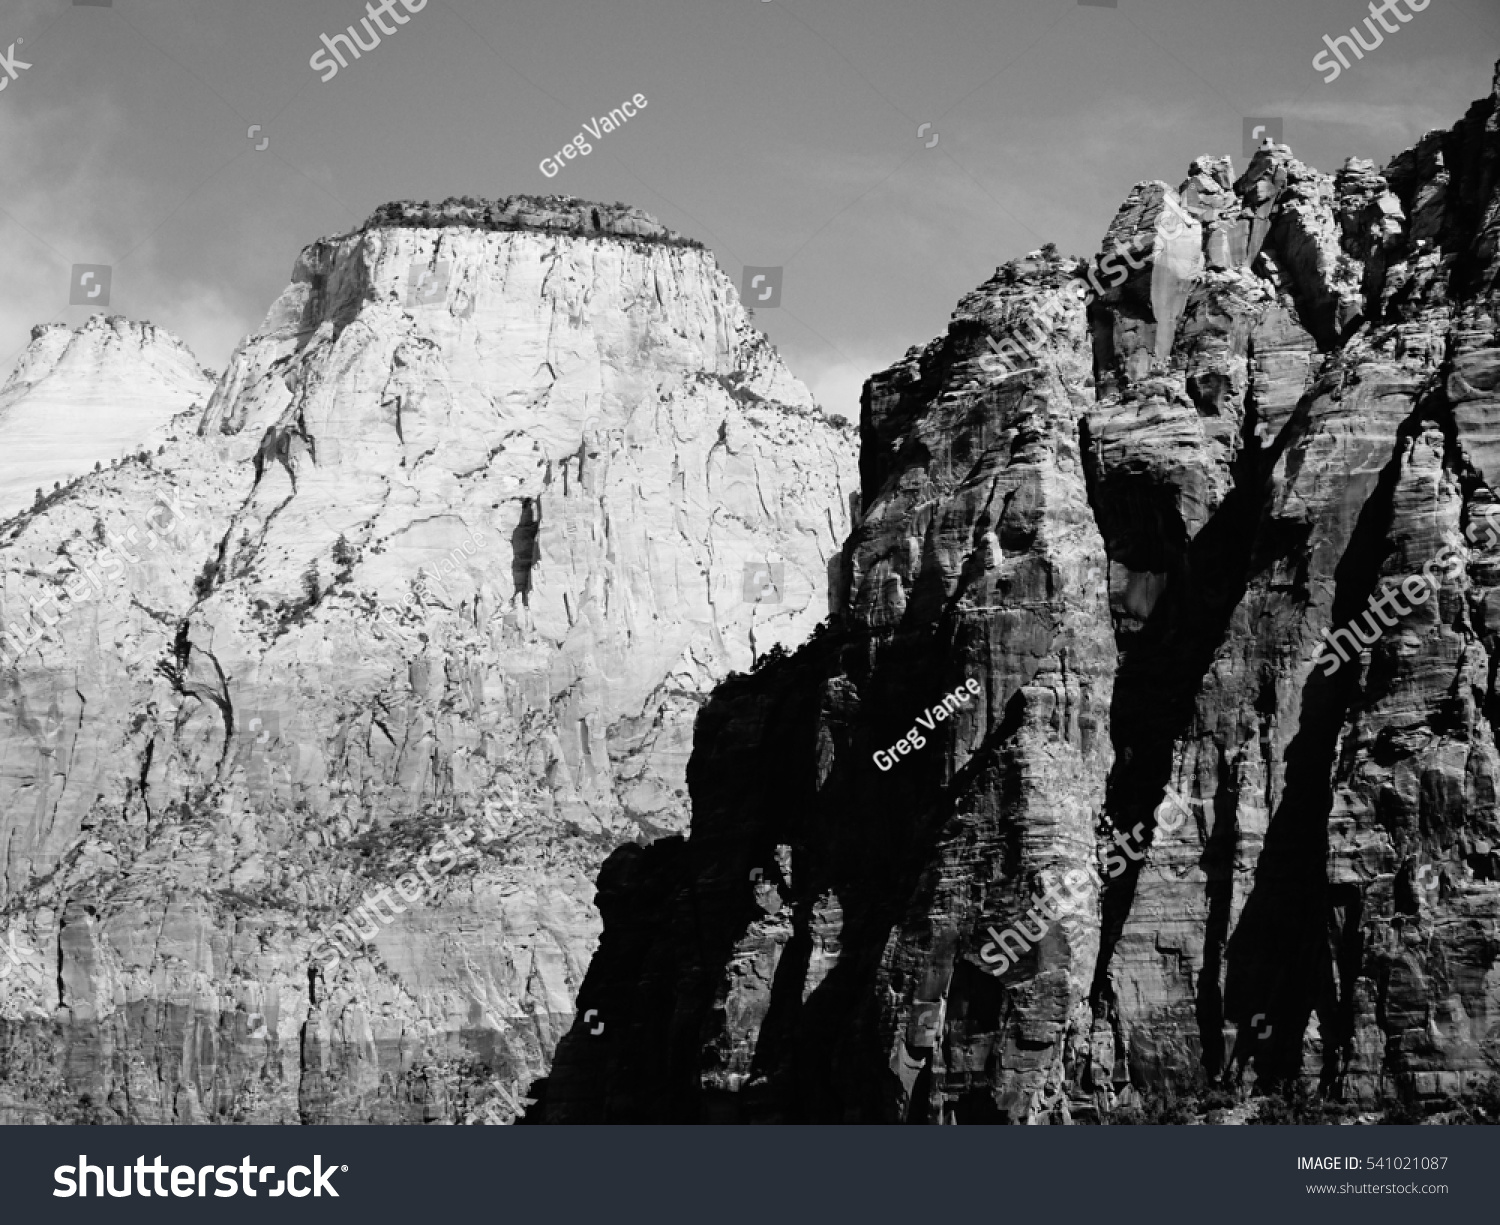 Mountains at zion national park utah in black and white